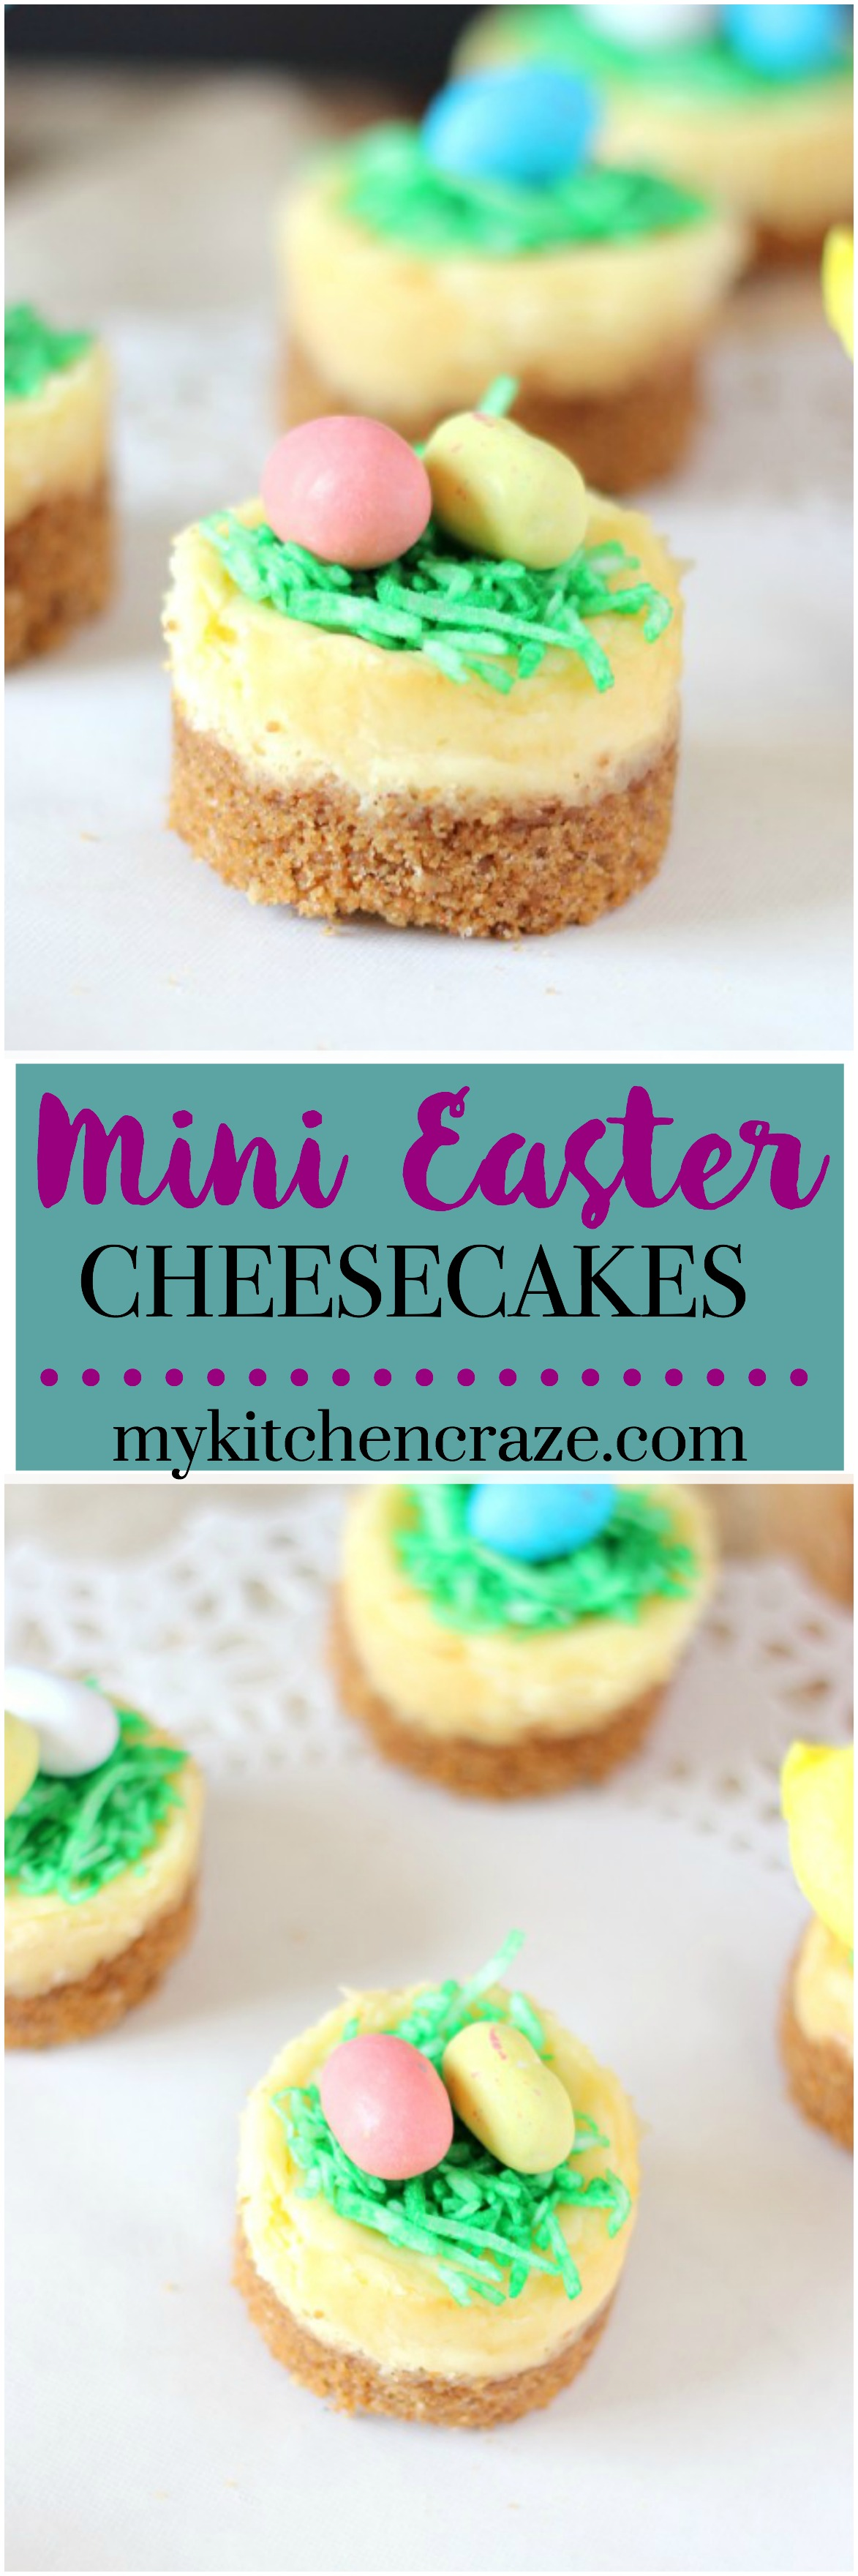 Mini Easter Cheesecake ~ mykitchencraze@gmail.com